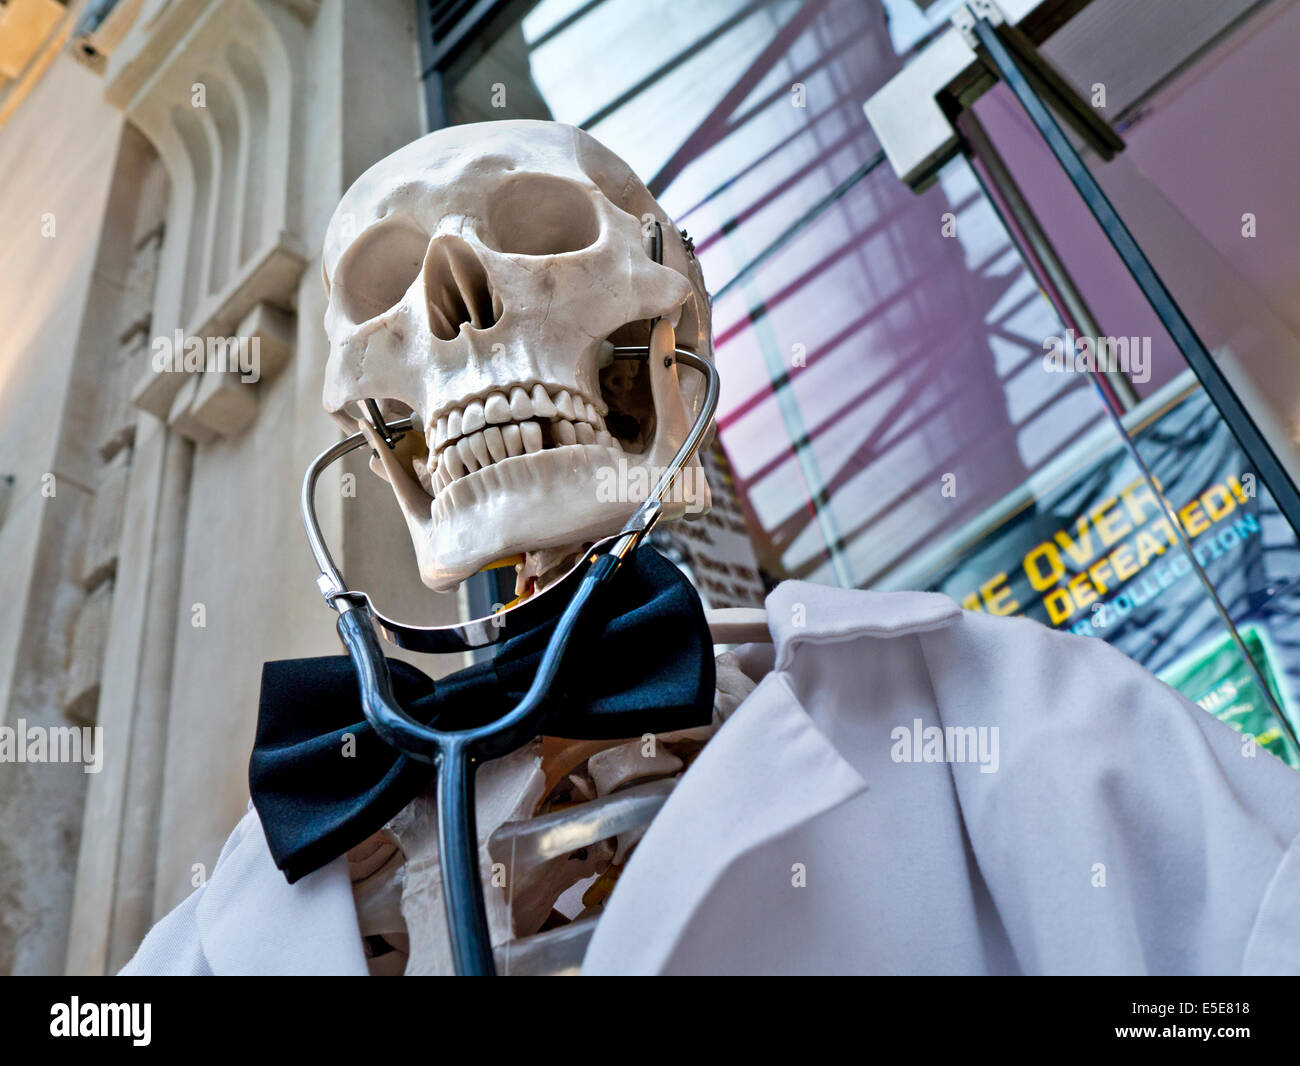 Humorous visual reminder of personal health care with human skeleton dressed as a Doctor Death with stethoscope - Stock Image